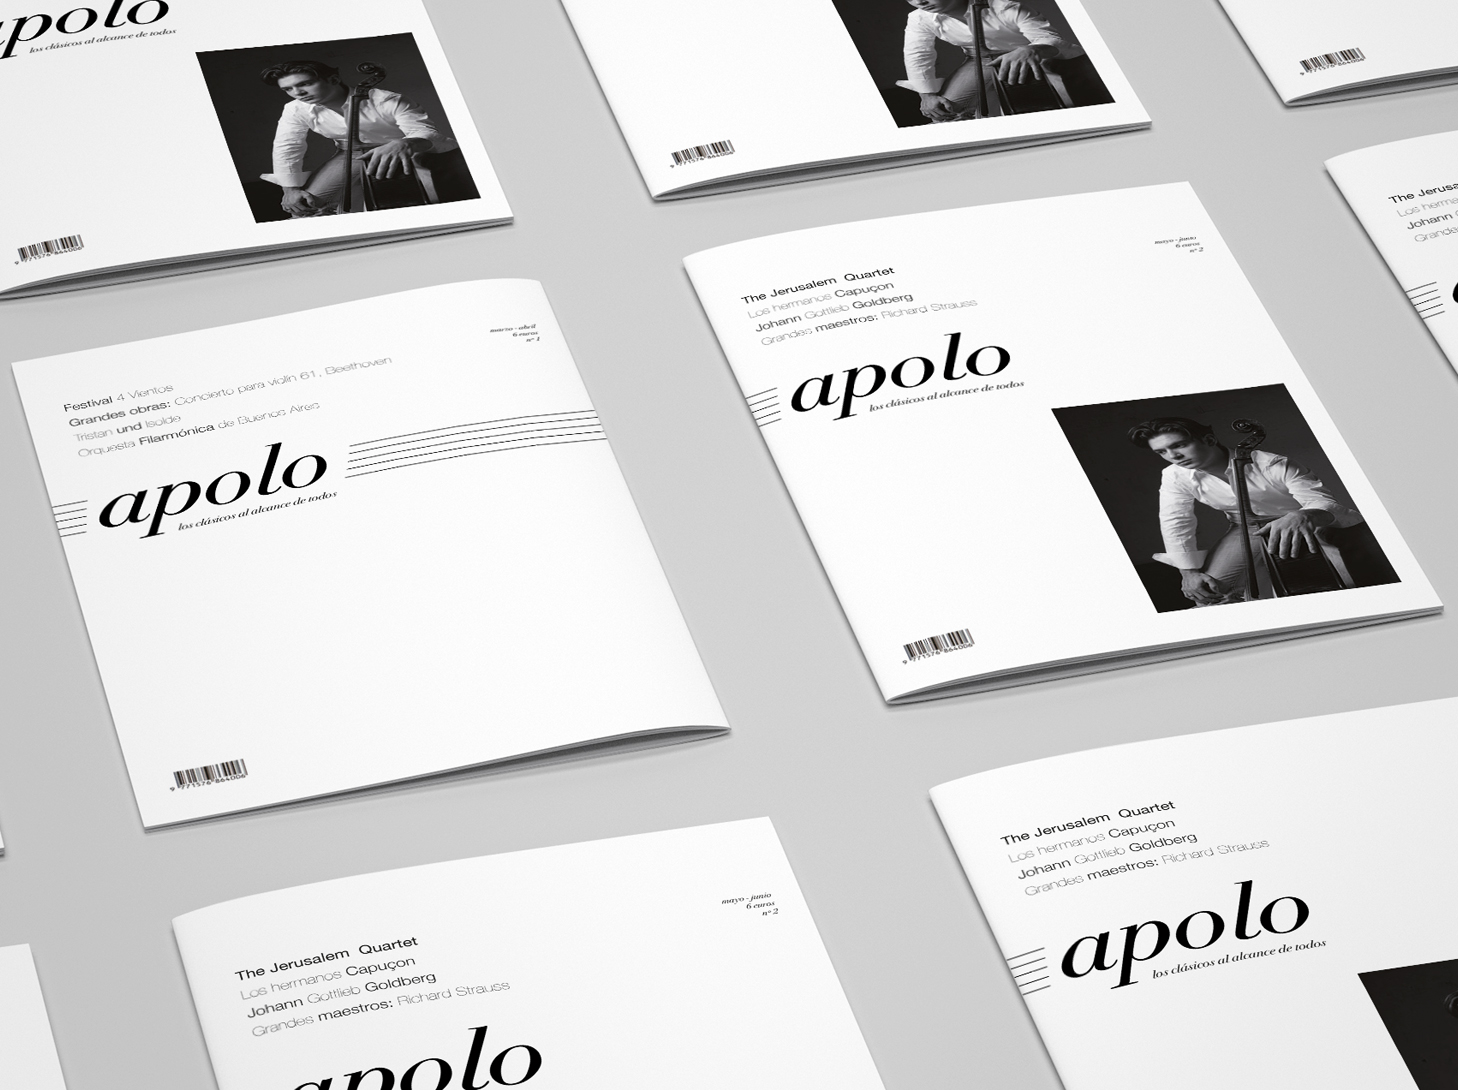 Apolo Magazine - #editorial